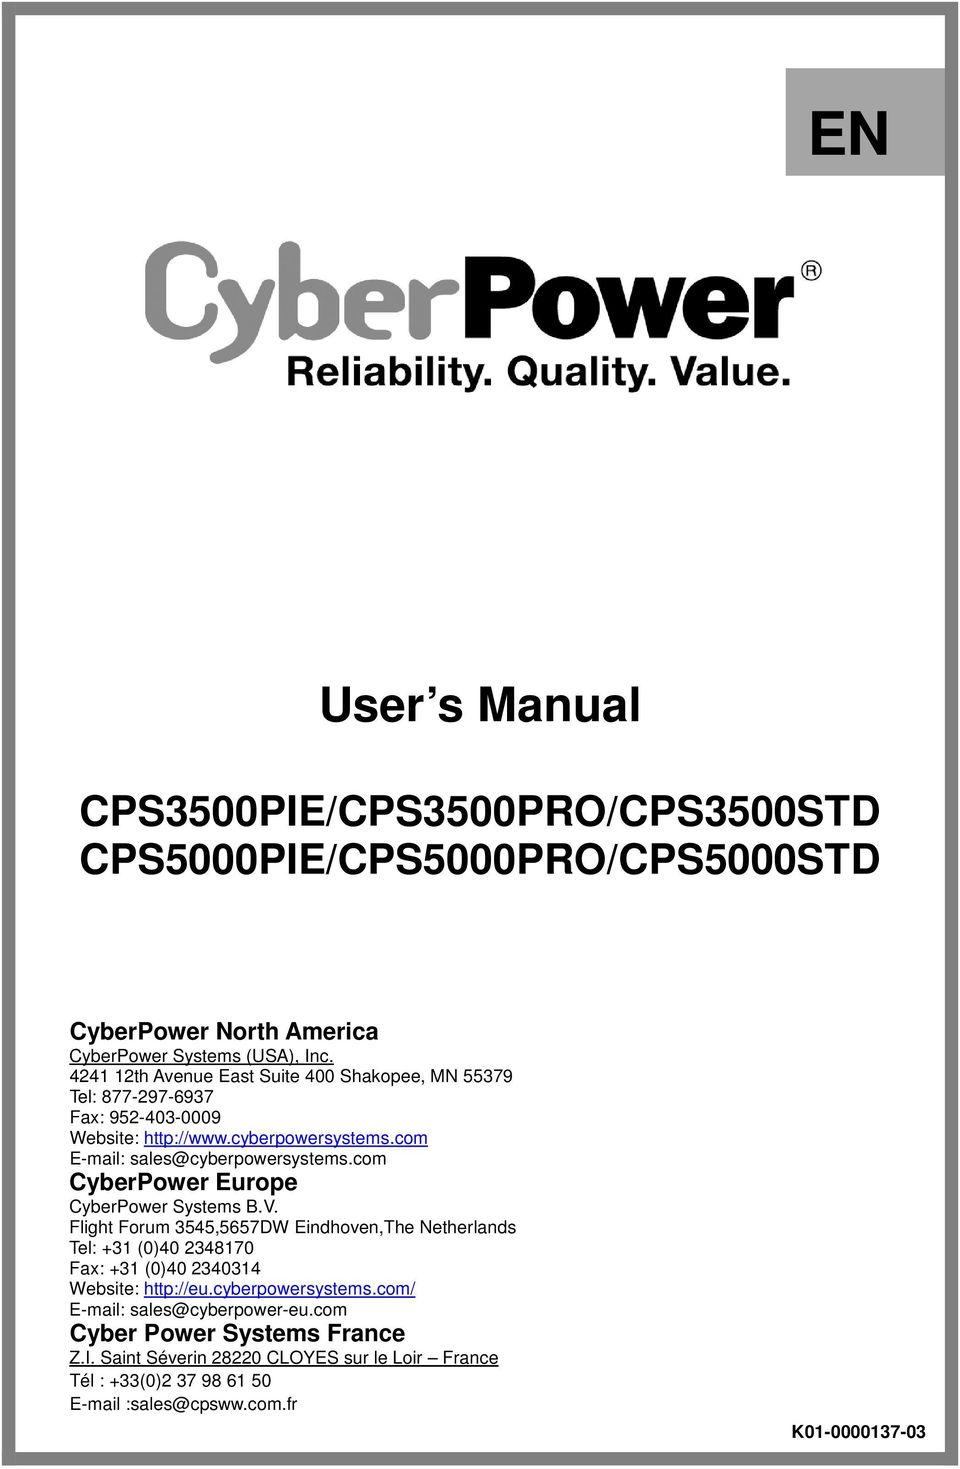 com CyberPower Europe CyberPower Systems B.V. Flight Forum 3545,5657DW Eindhoven,The Netherlands Tel: +31 (0)40 2348170 Fax: +31 (0)40 2340314 Website: http://eu.